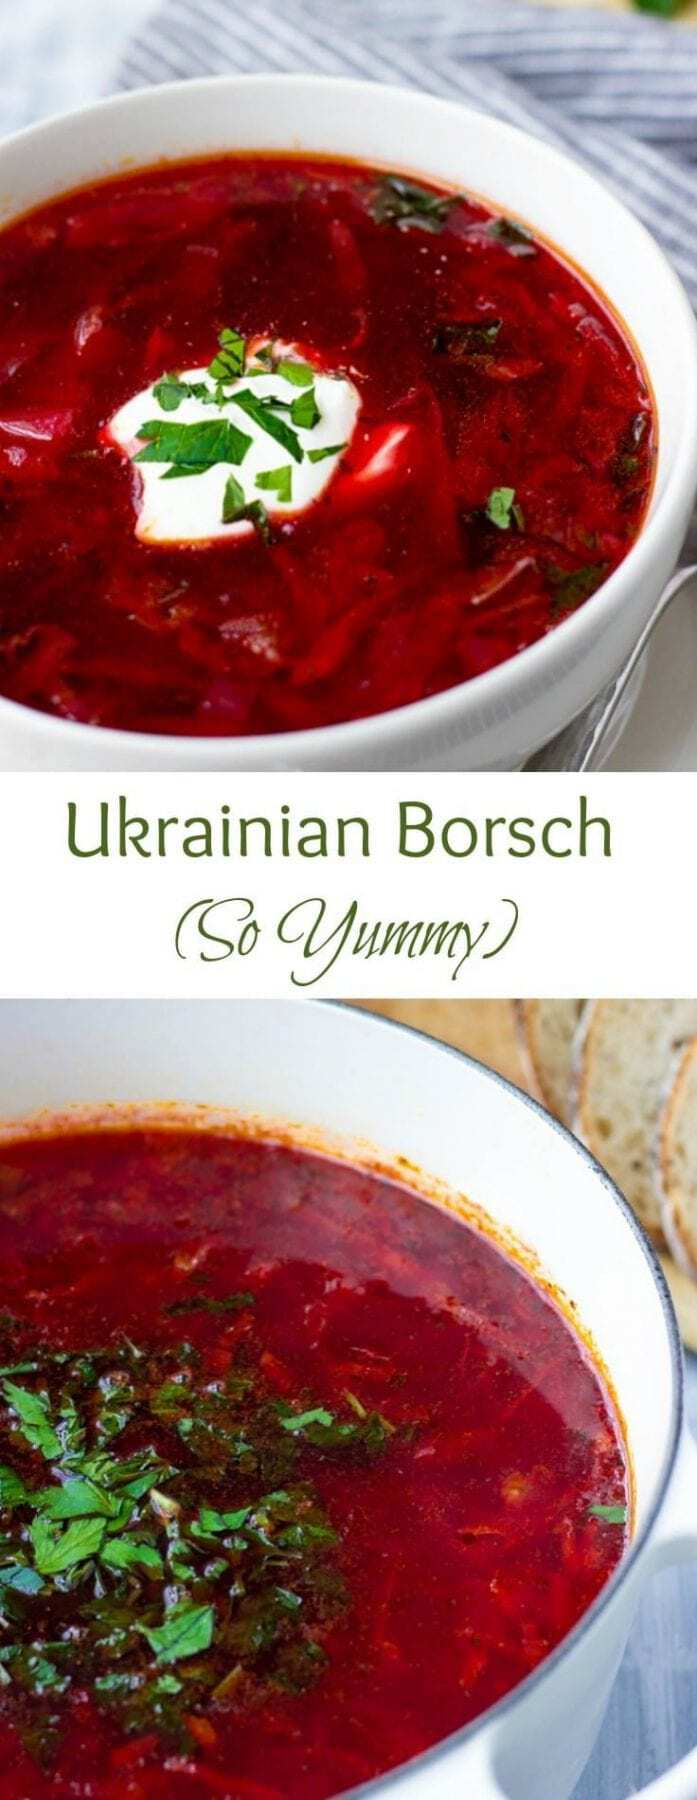 Ukrainian Borscht The Only Recipe You Need Video Lavender Macarons